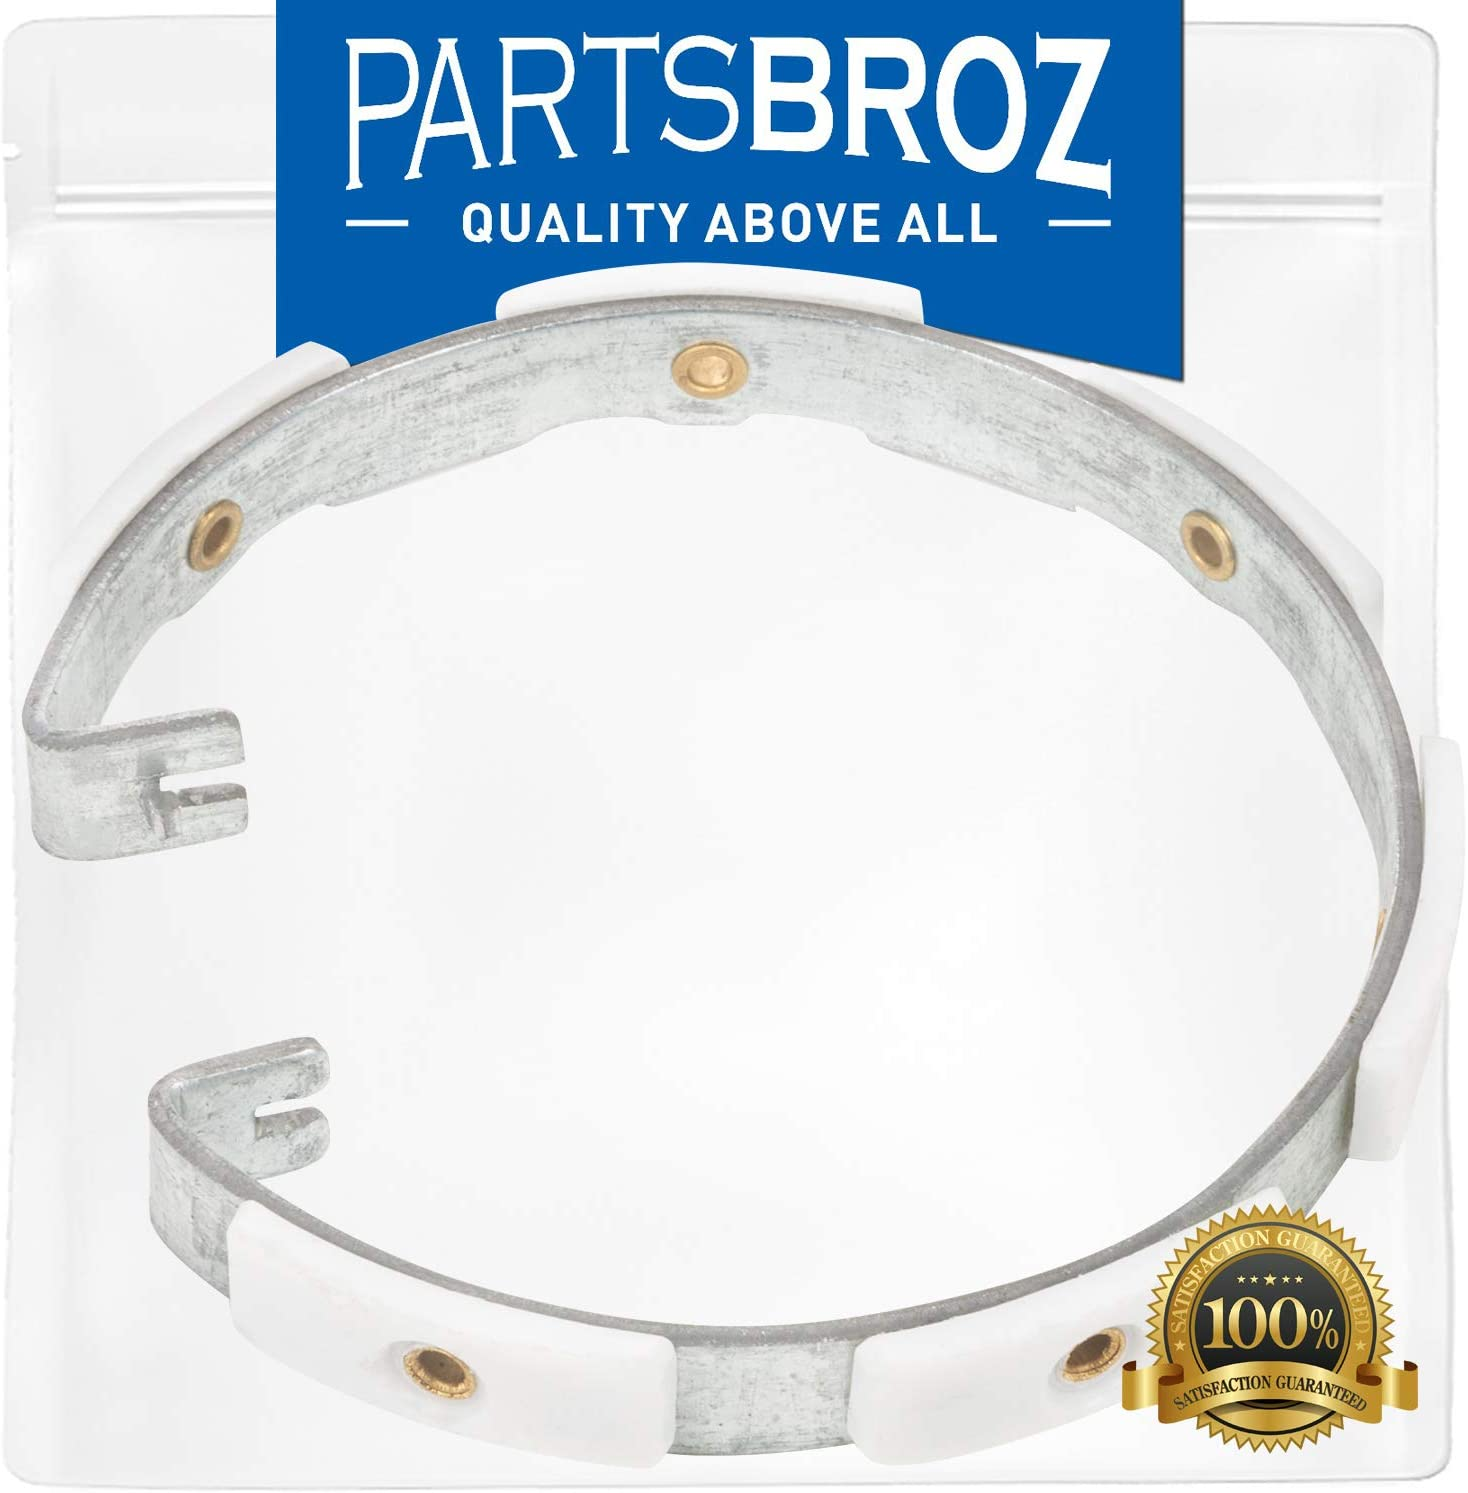 W10817888 Clutch Lining by PartsBroz - Compatible with Whirlpool Top-Load Washing Machines - Replaces AP5985204, 3951993, PS11723124, W10817173